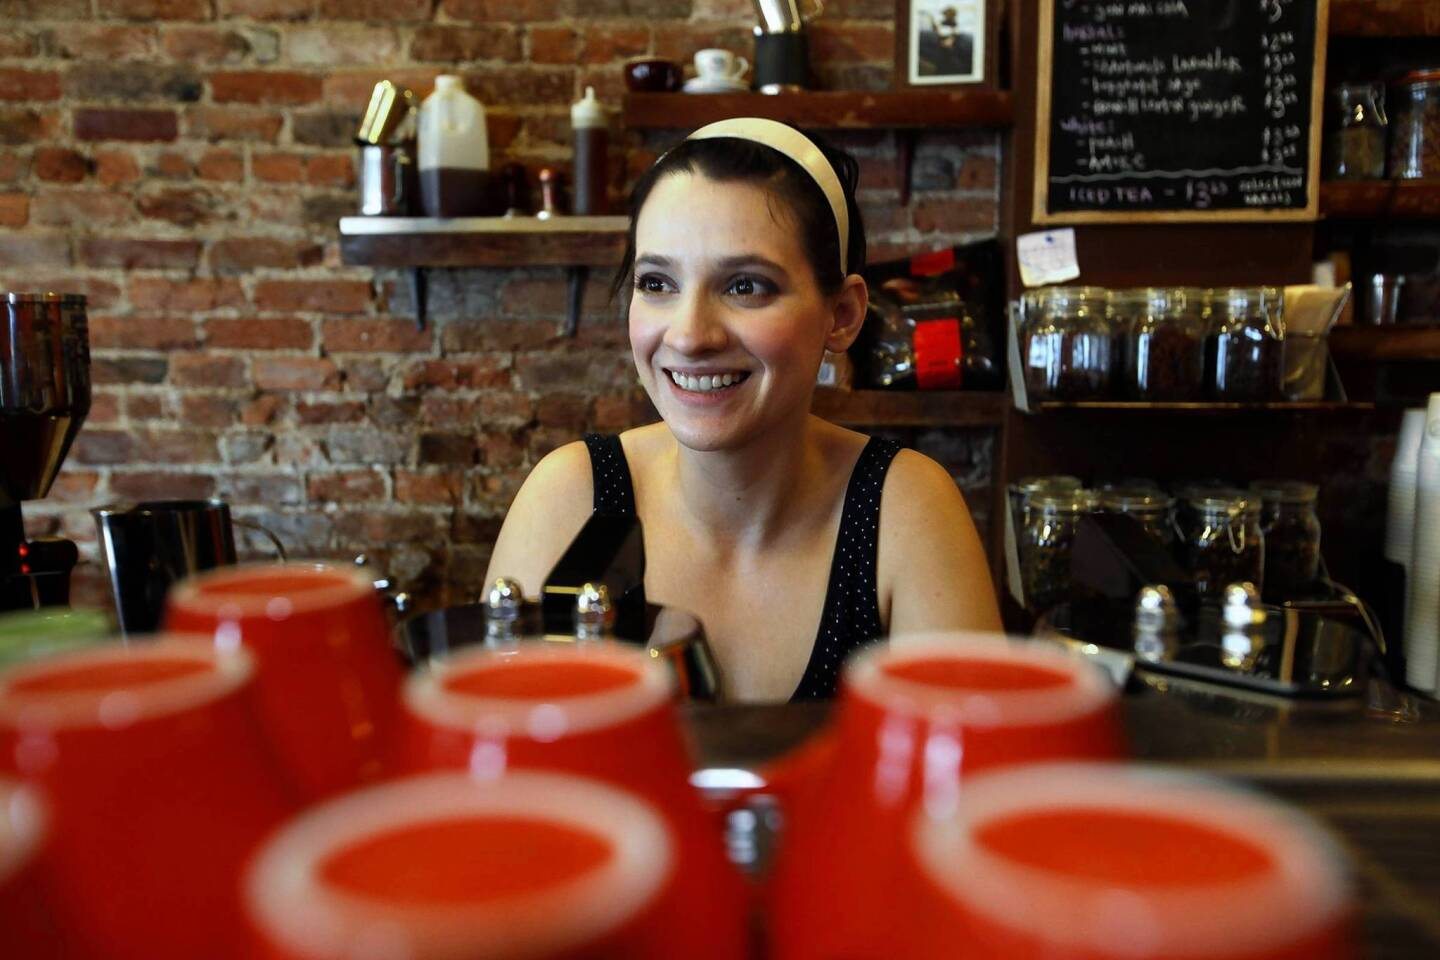 It's all smiles at Cafe Grumpy